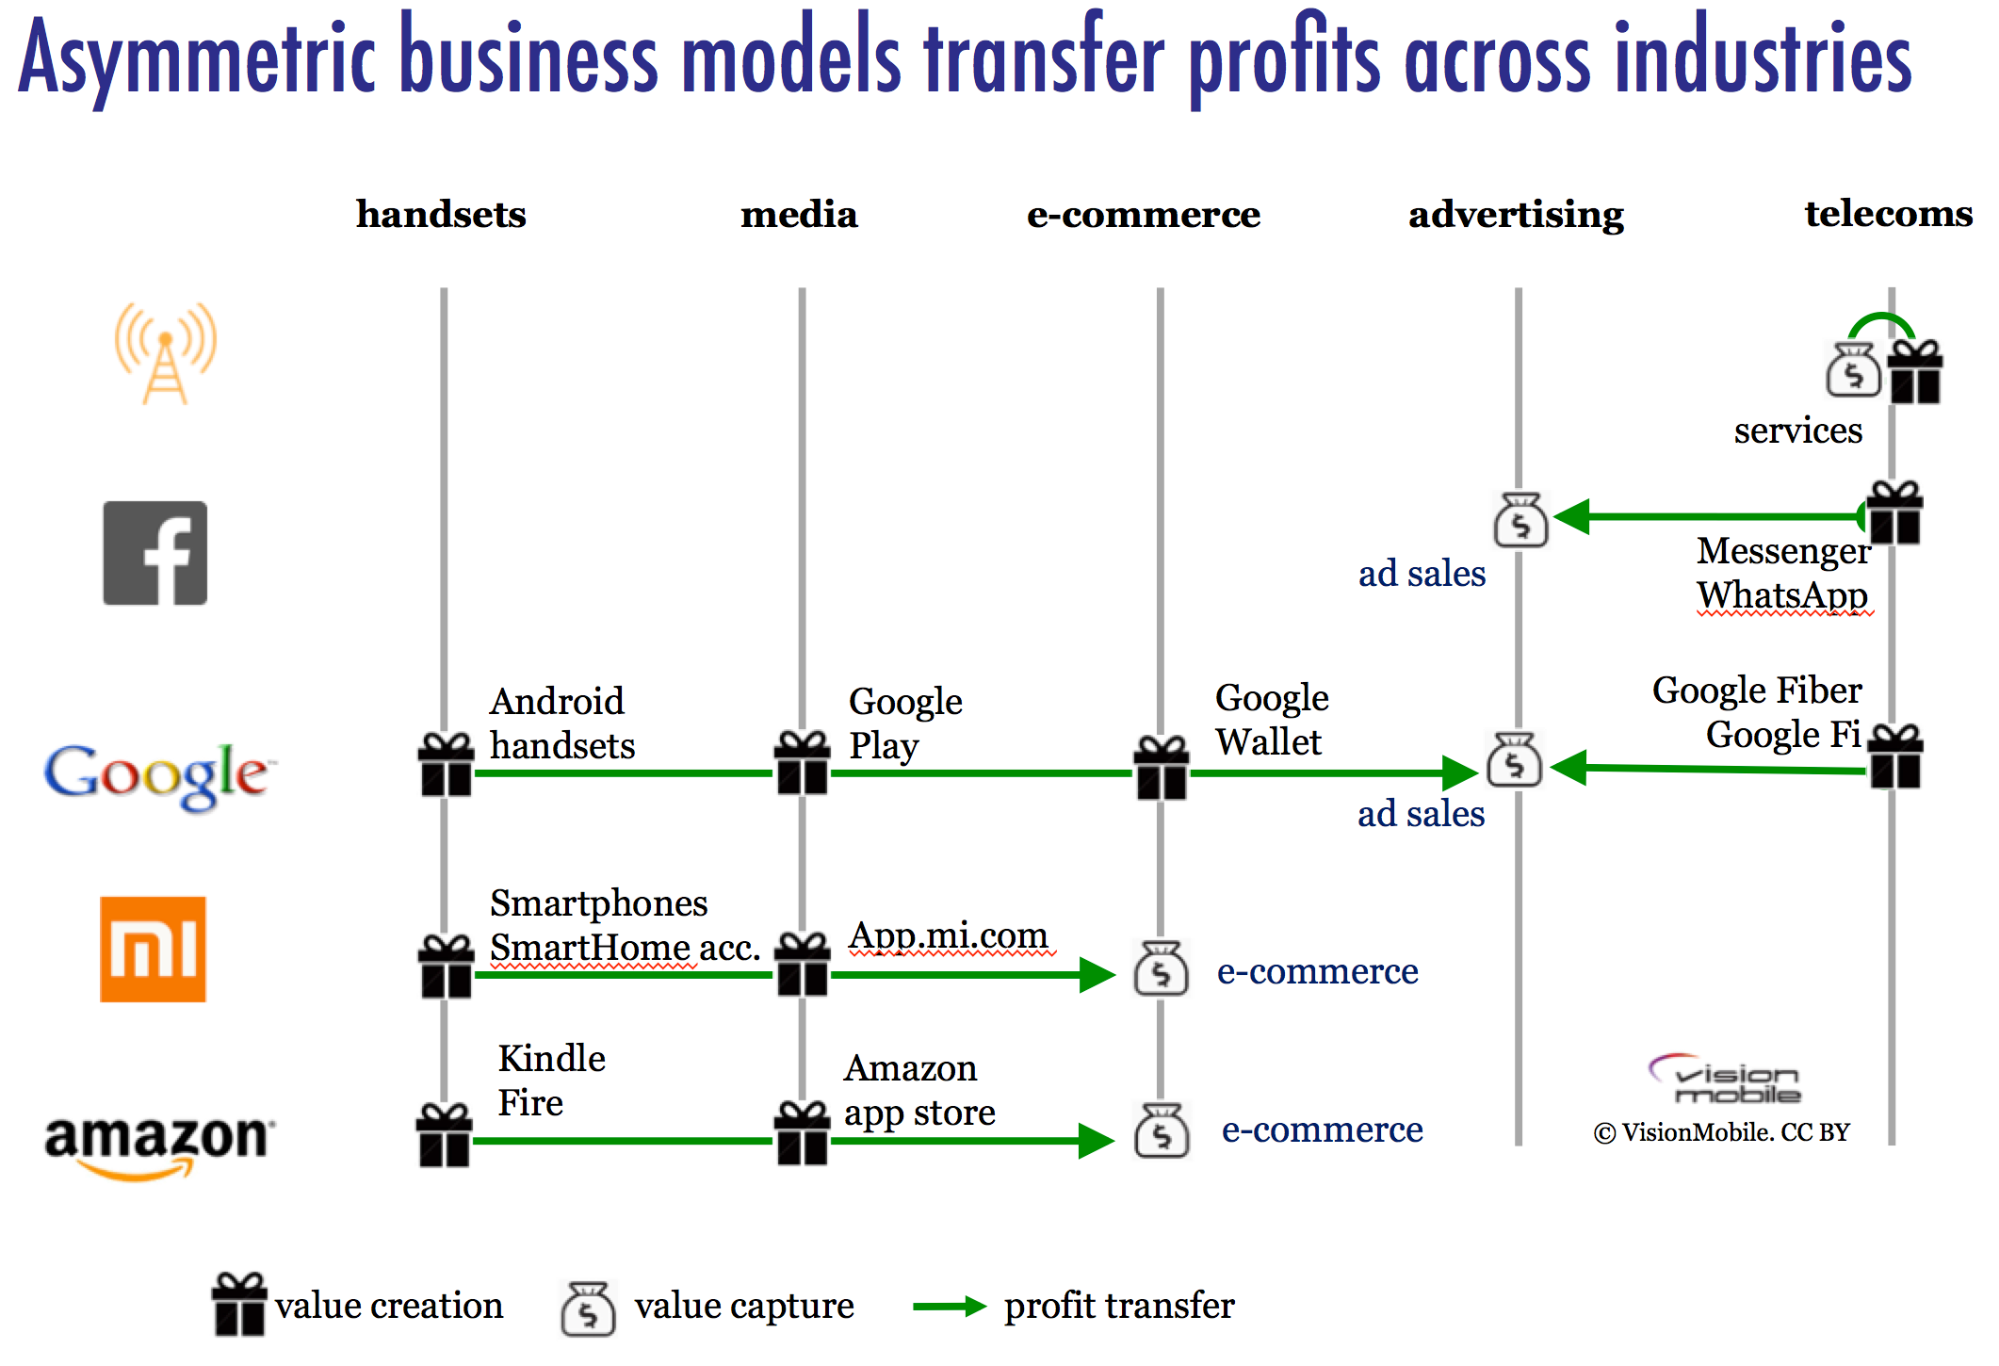 asymetric-business-models-transfer-profits-across-industries